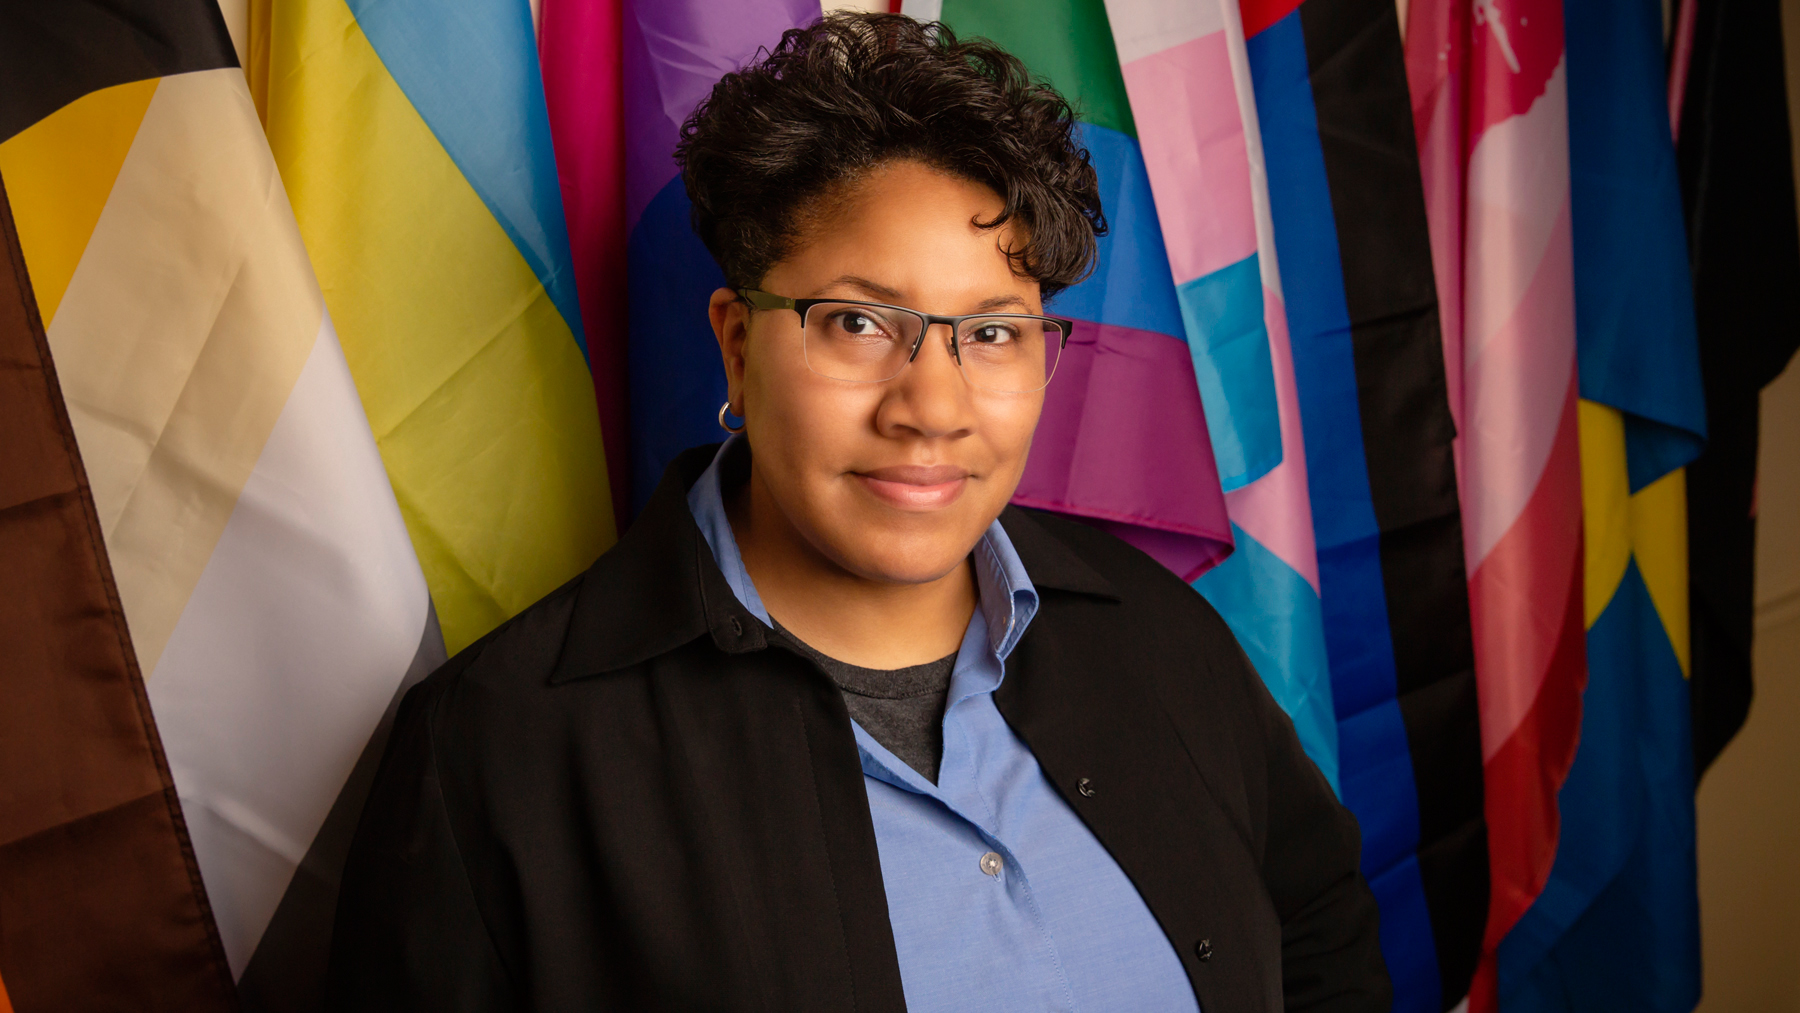 Leslie K. Morrow, the director of the Lesbian, Gay, Bisexual and Transgender Resource Center at the University of Illinois.  Photo by L. Brian Stauffer